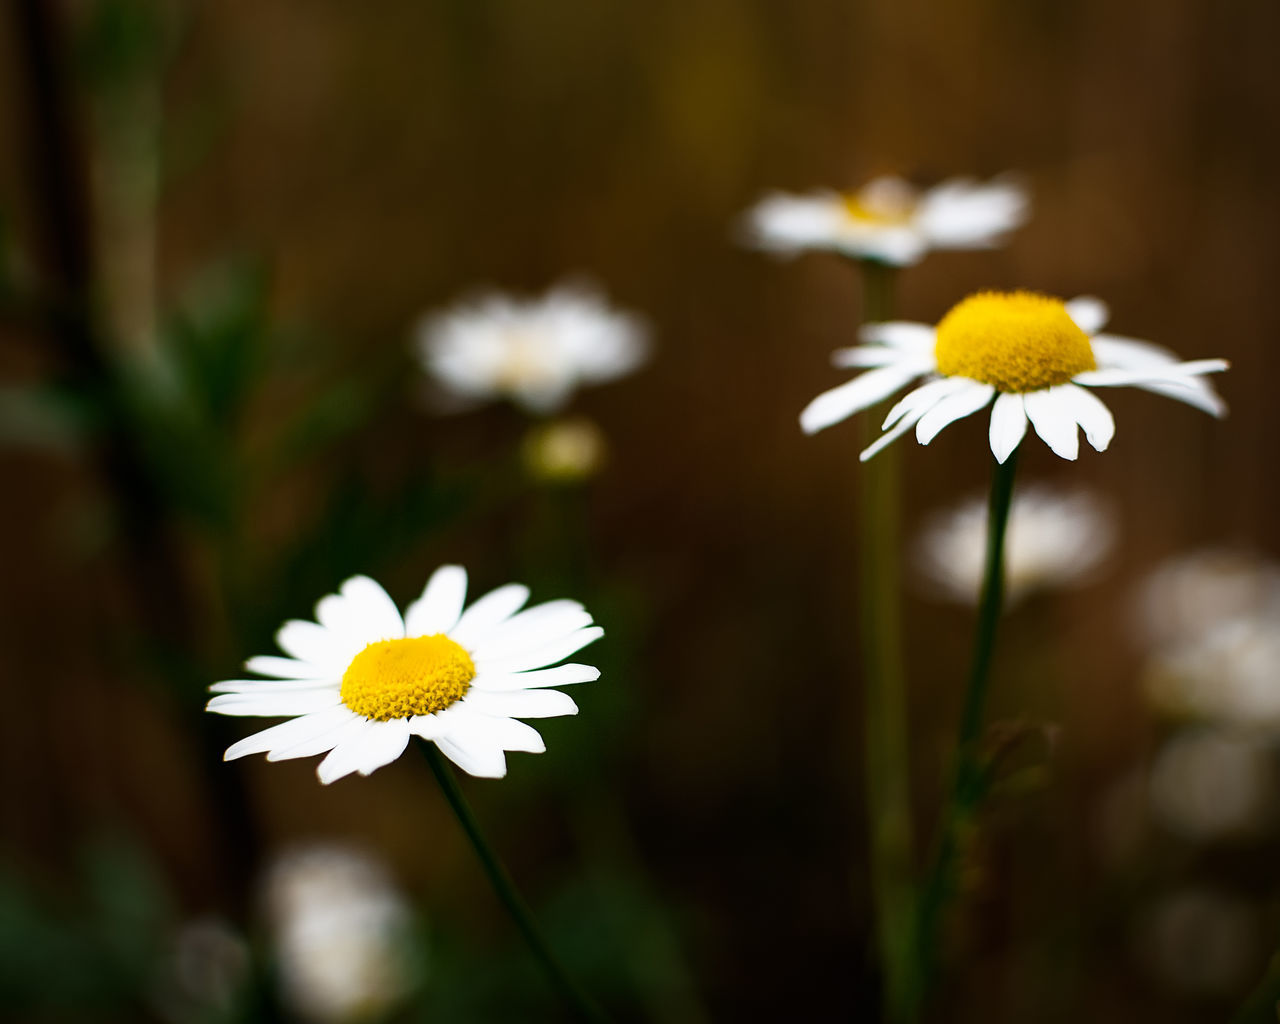 Matricaria chamomilla Beauty In Nature Blooming Chamomile Close-up Daisy Day Flower Flower Head Fragility Freshness Growth Nature No People Outdoors Petal Plant Pollen White Color Nikonphotography